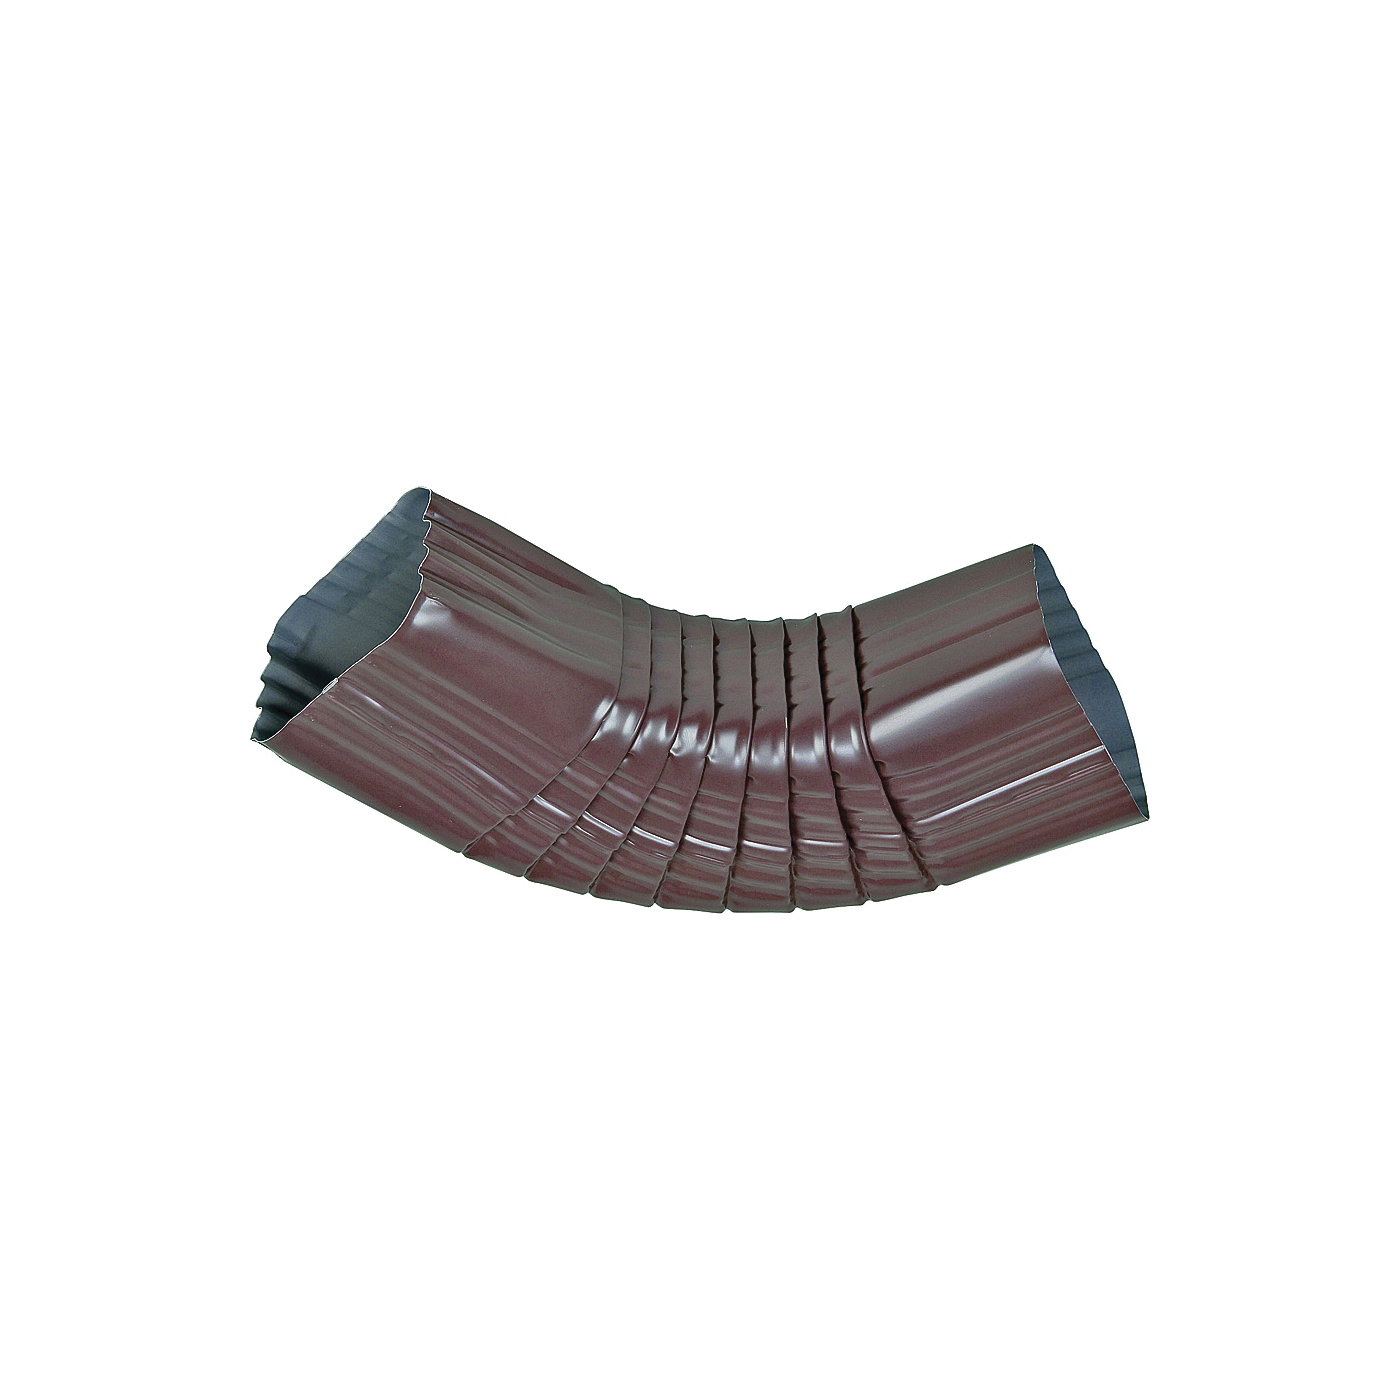 Picture of Amerimax 2526519 Gutter Side Elbow, Aluminum, Brown